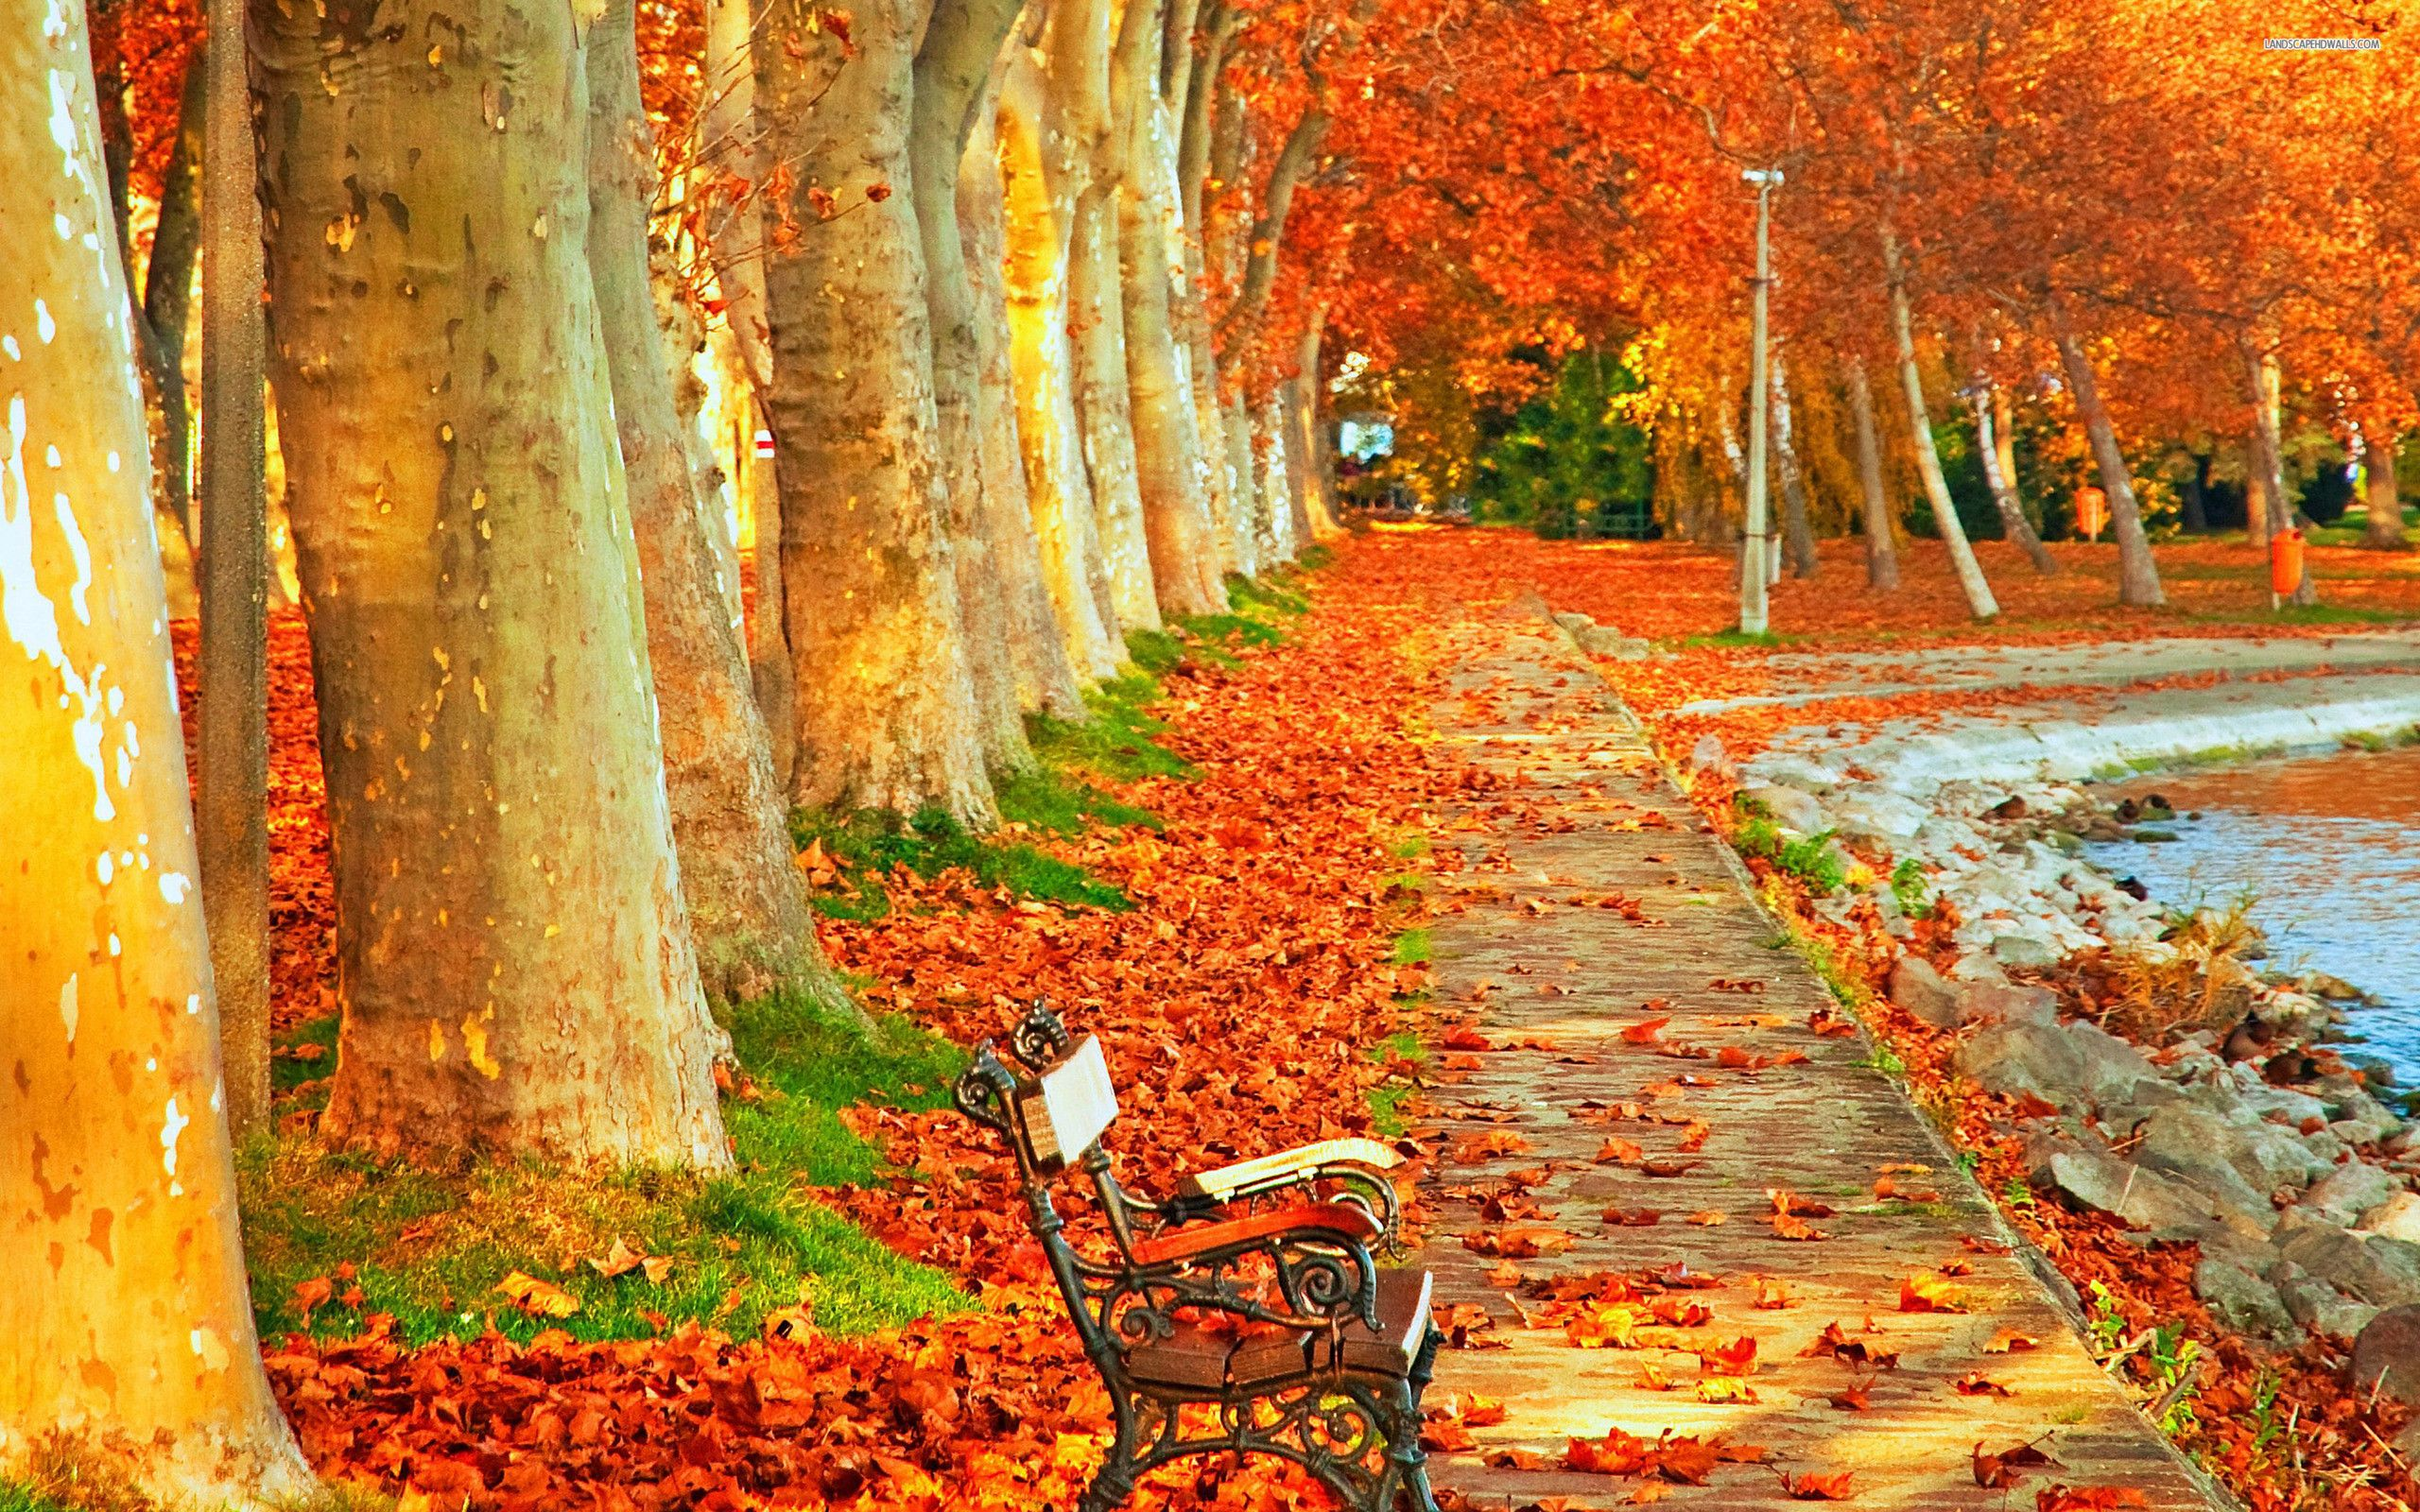 Download Large Size Wallpapers For Laptop Gallery Autumn Leaves Wallpaper Fall Pictures Autumn Photography